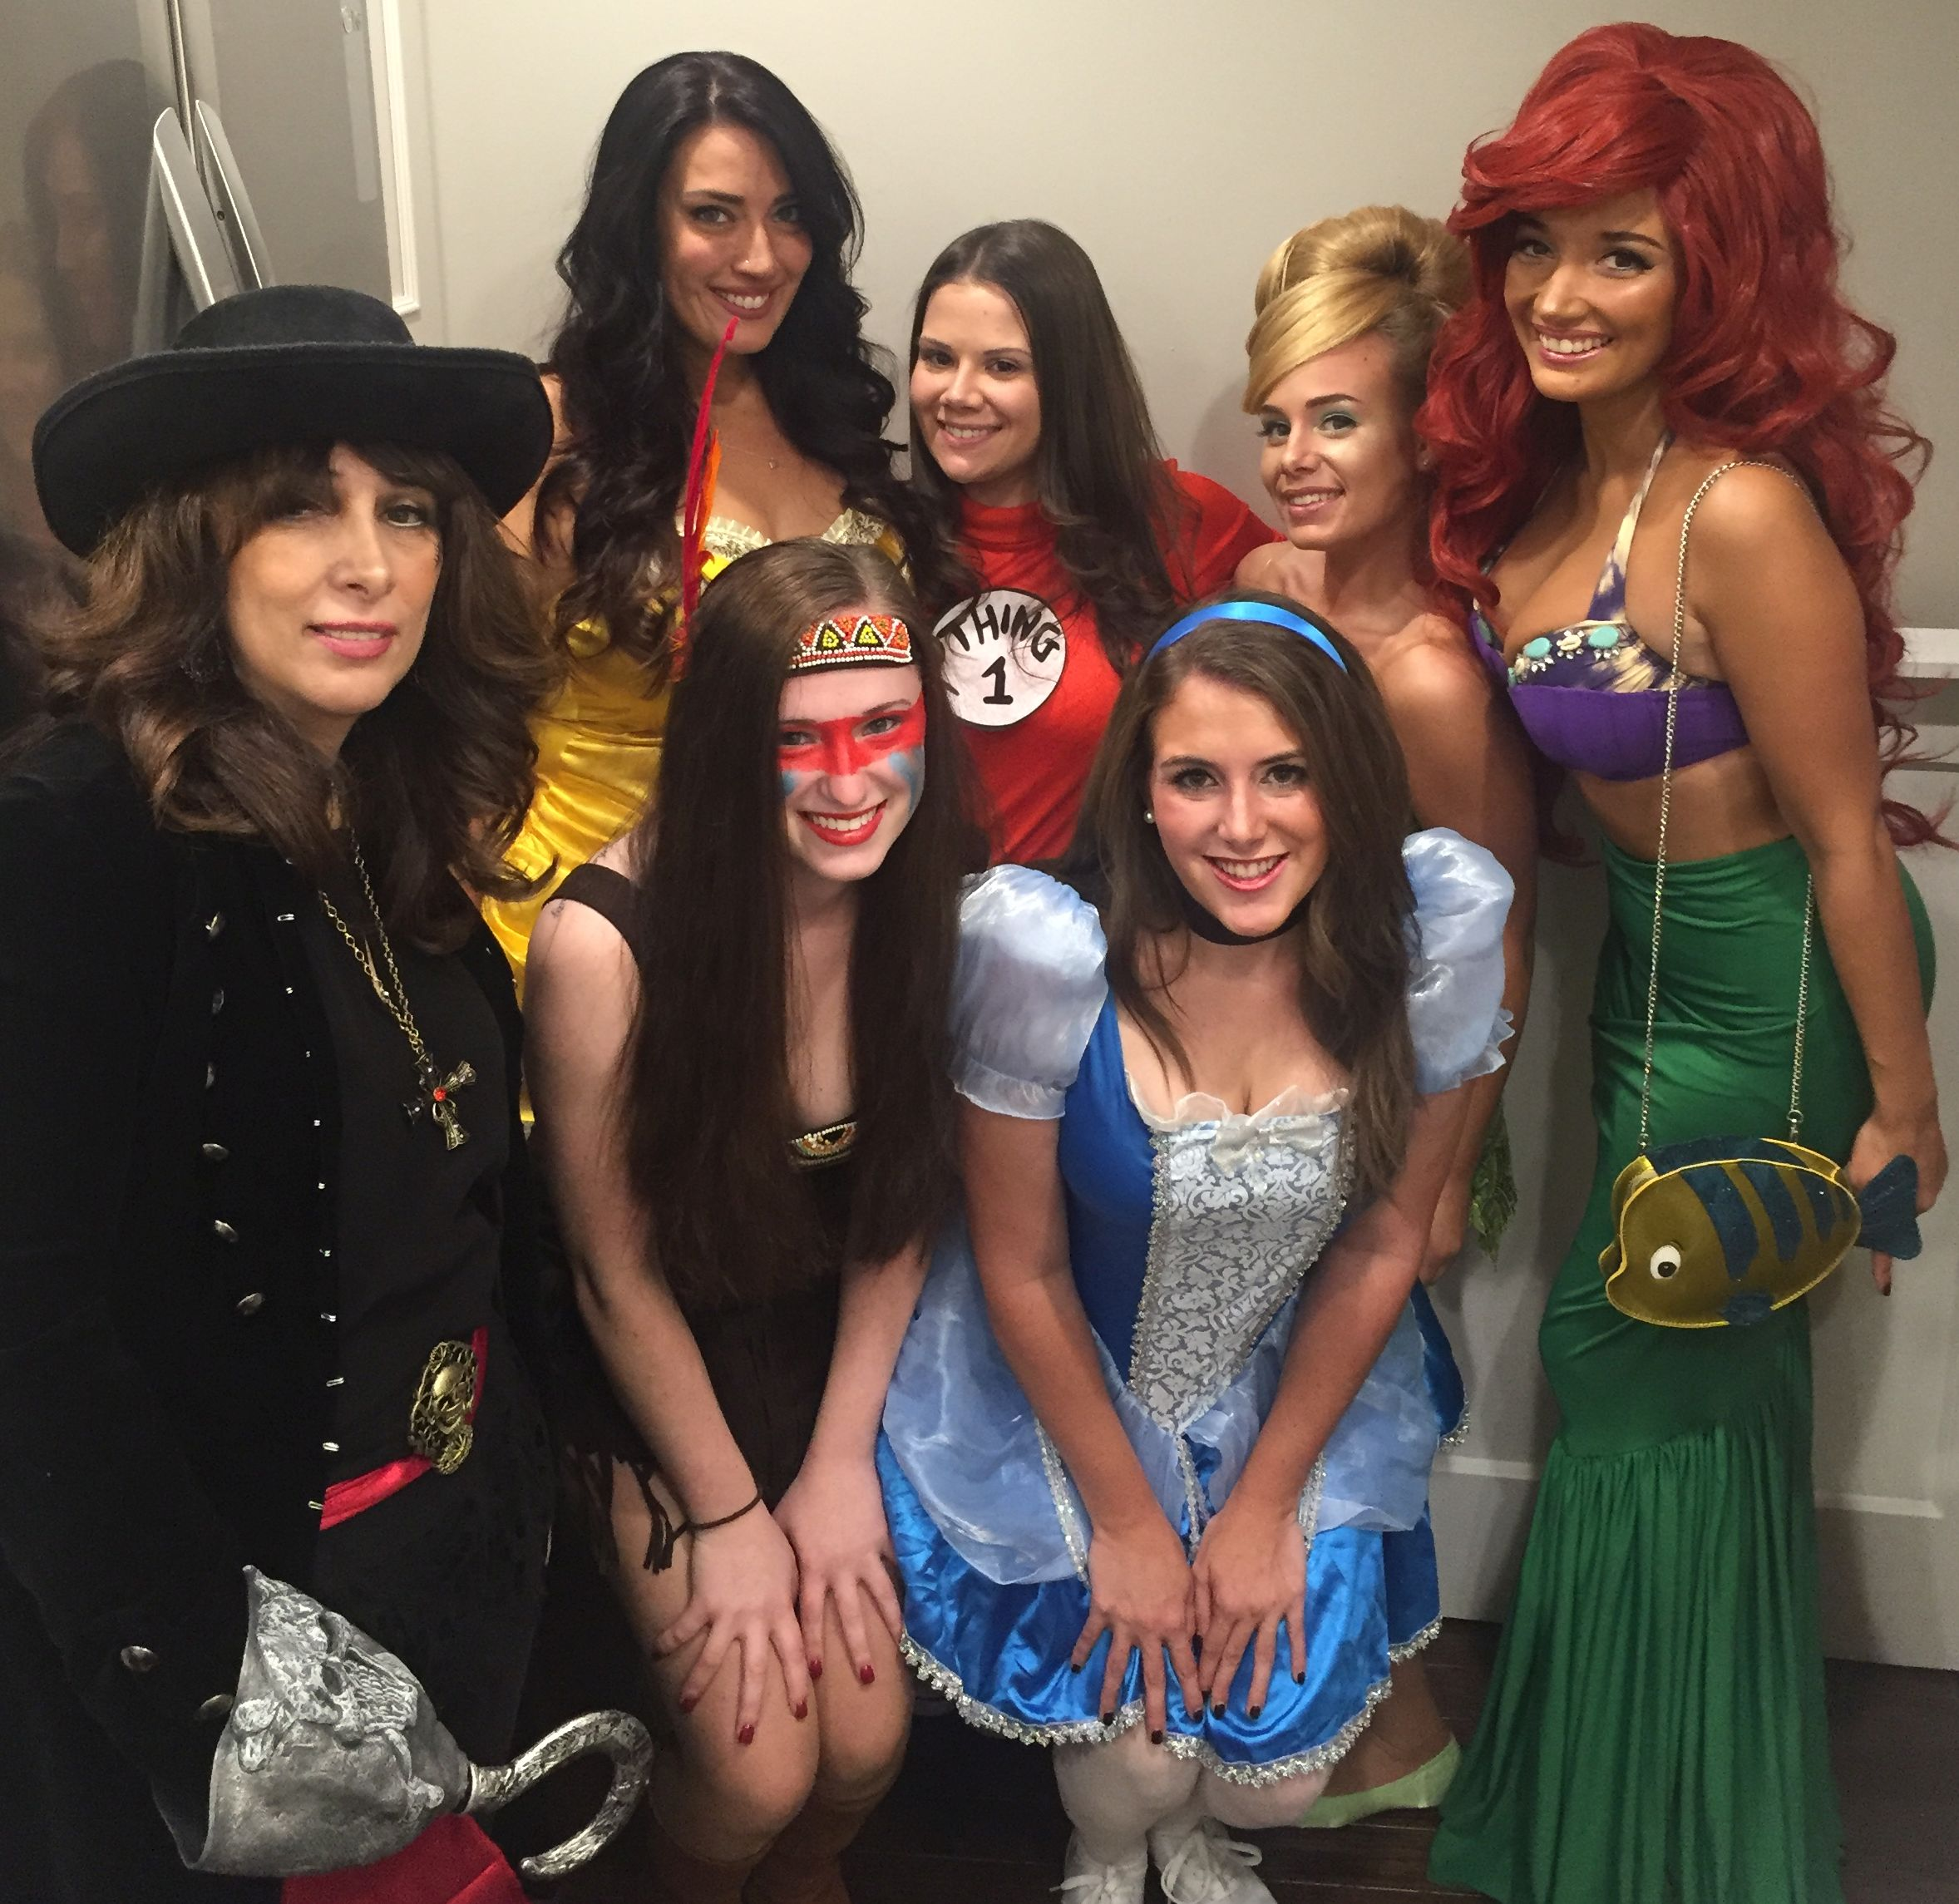 disney-themed-joint-bachelor-and-bachelorette-party-disneybride2be